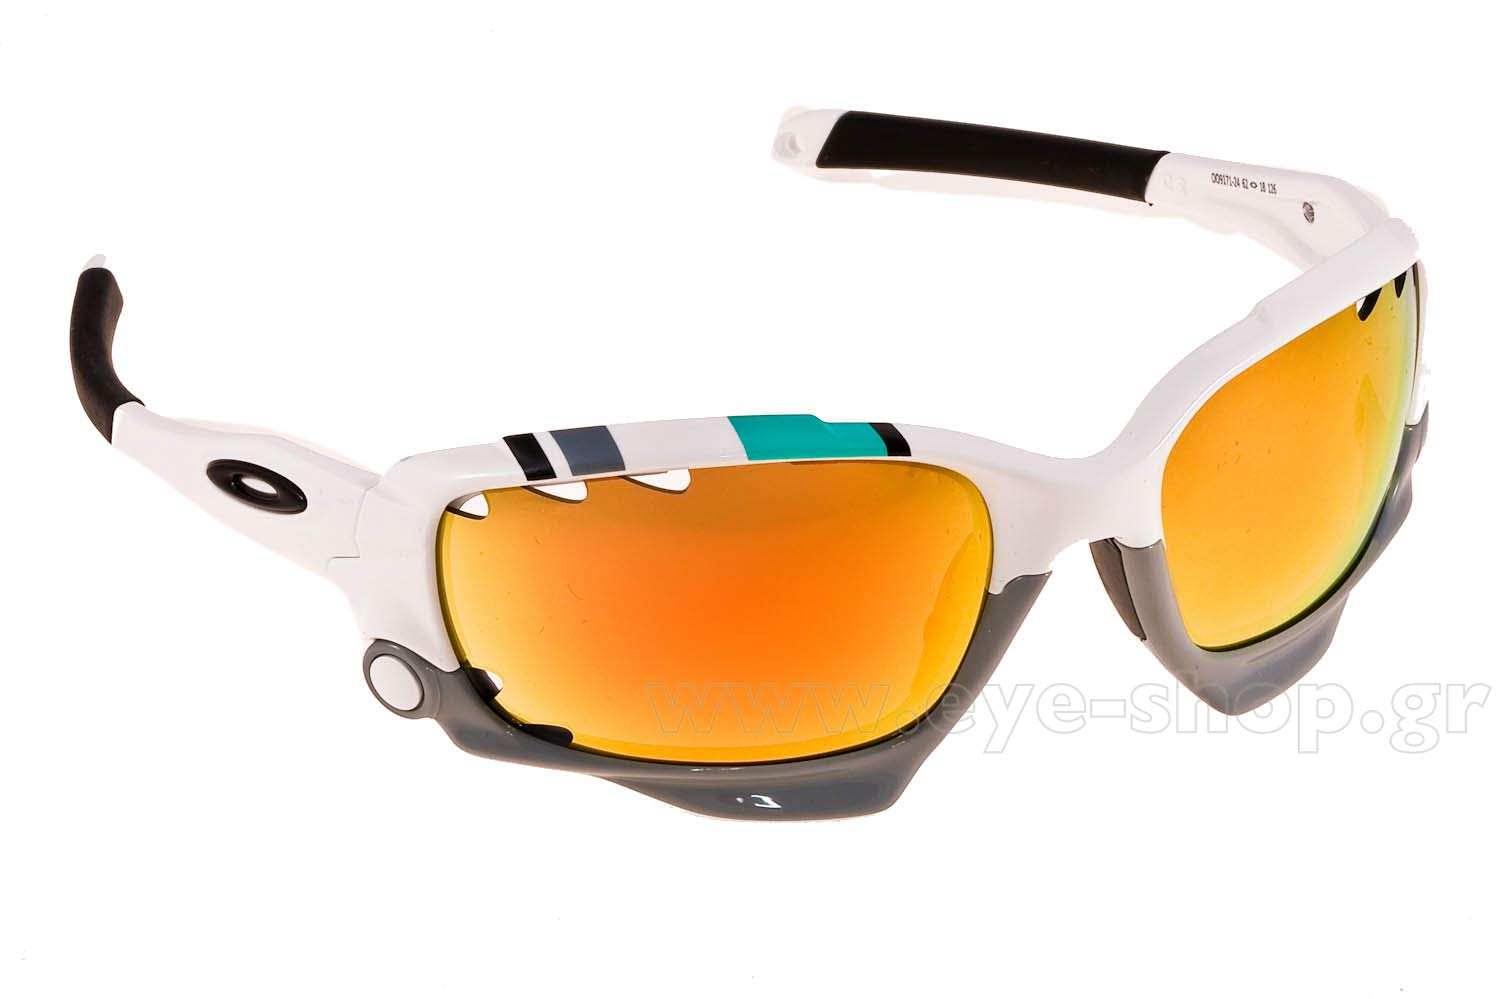 6d935442a6f Oakley Racing Jacket Vented - Restaurant and Palinka Bar